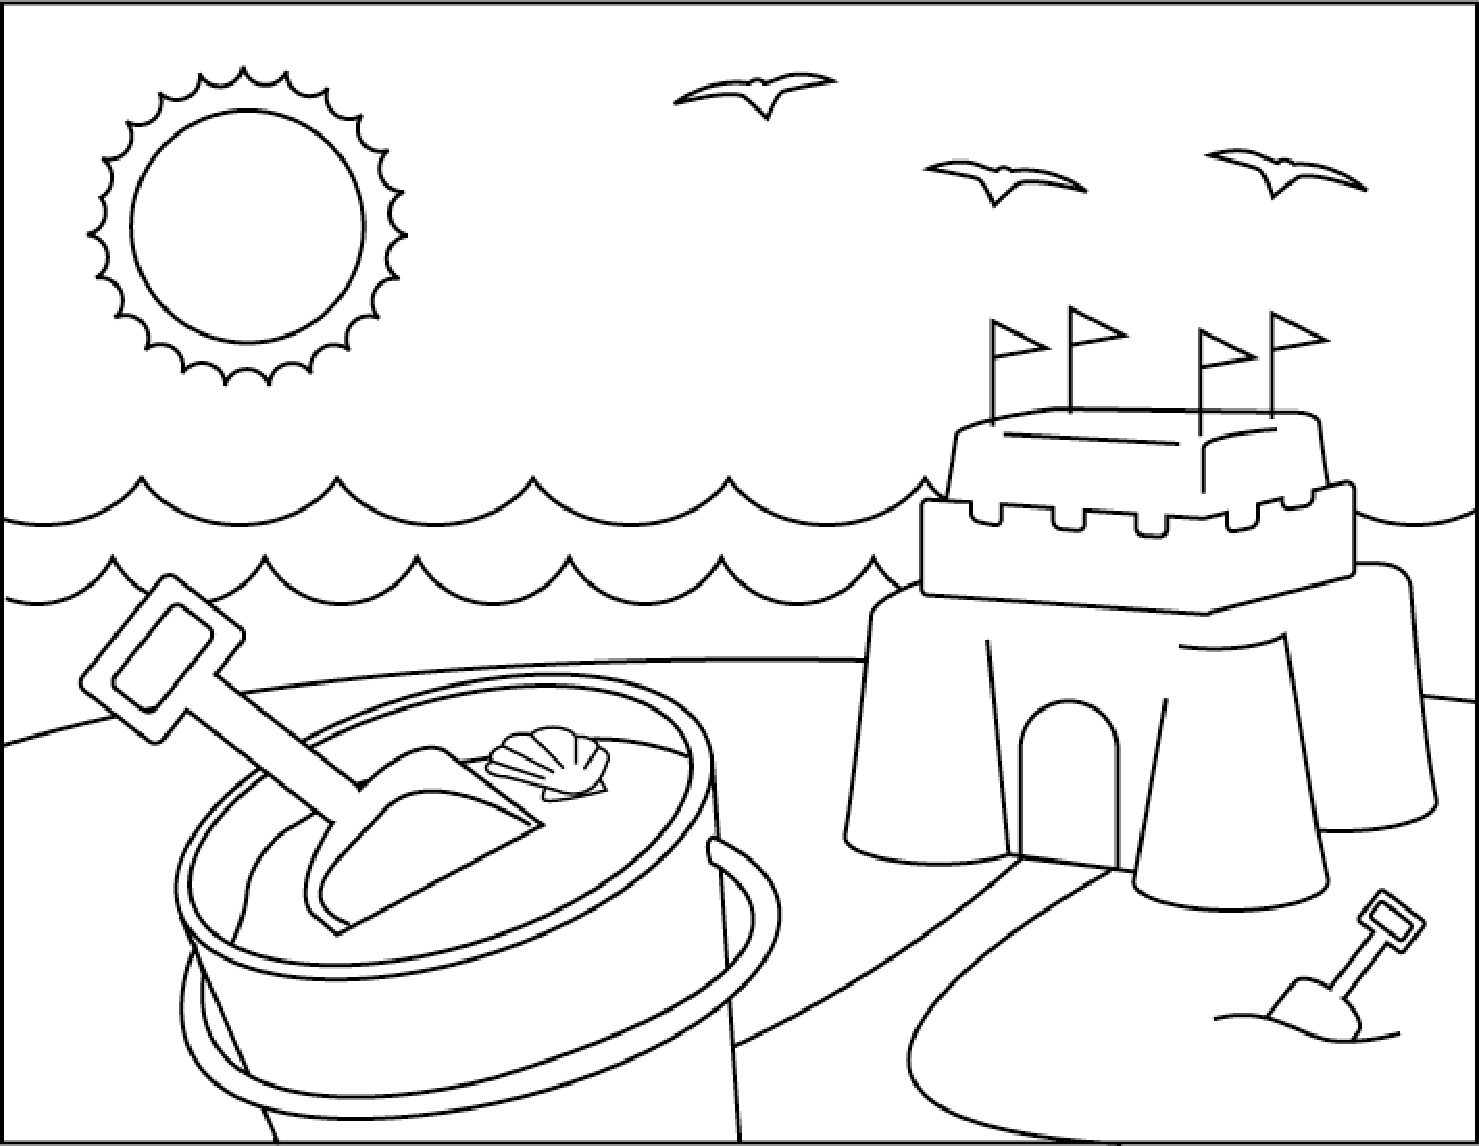 Coloring Pages : Coloring Pages Proven The Word Summer Page - Free Printable Beach Coloring Pages